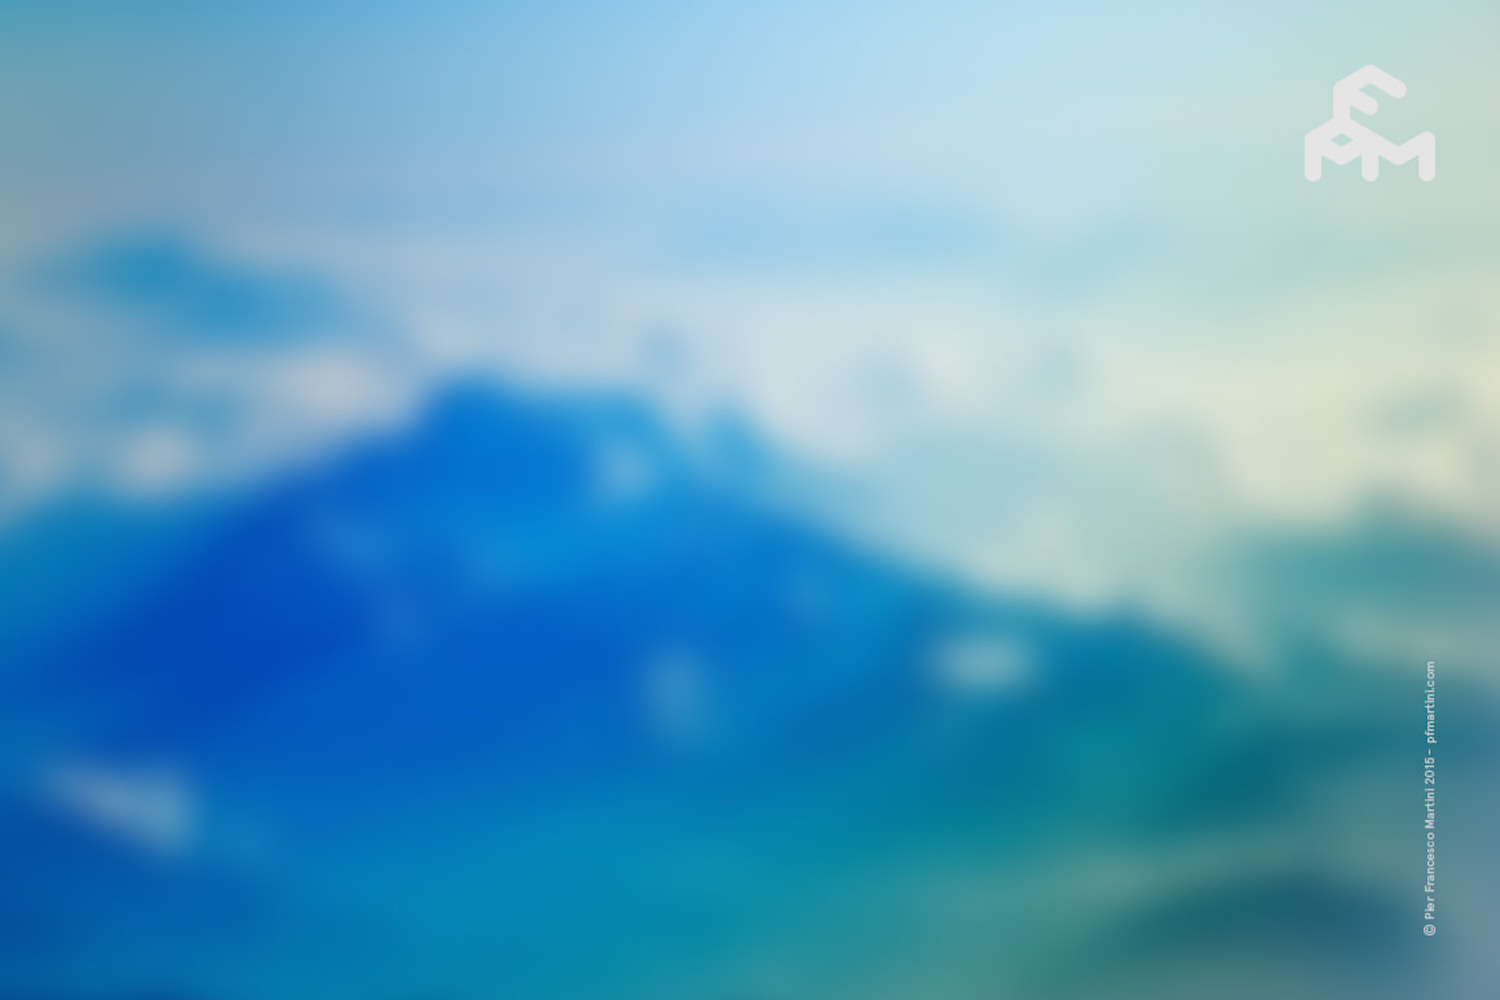 20 Winter Blurred Backgrounds example image 5